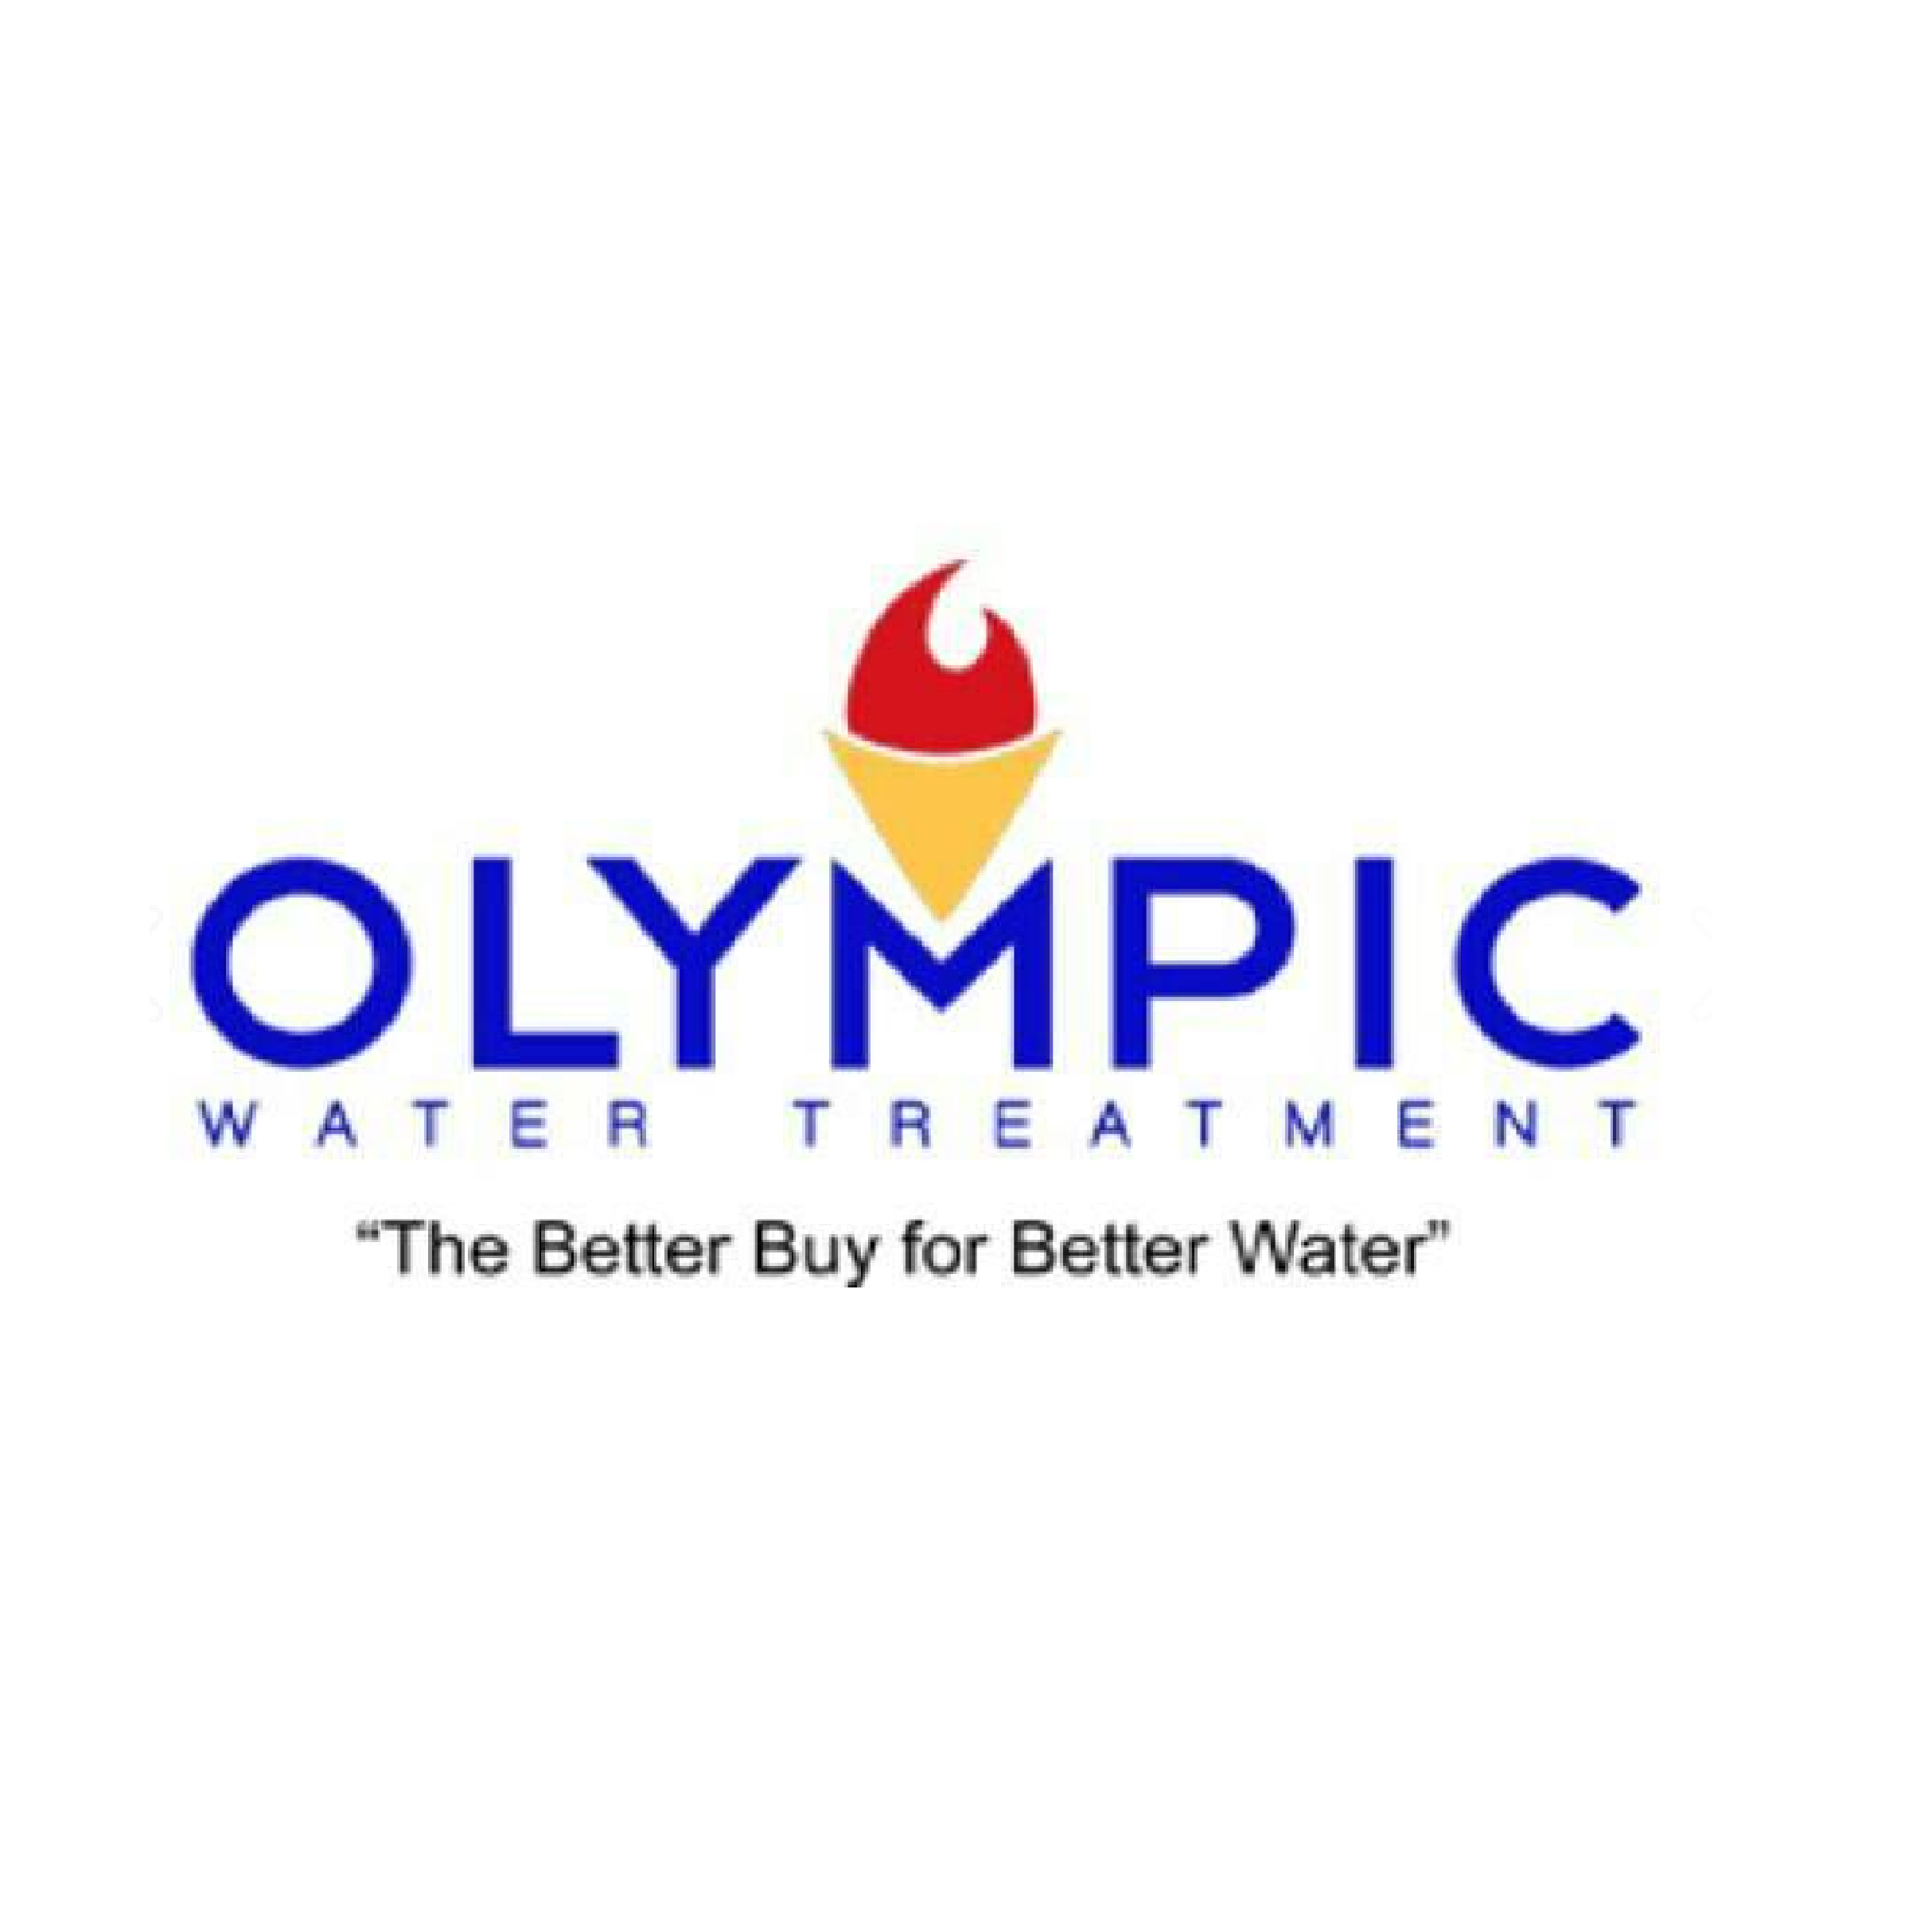 Olympic Water Treatment - Loveland, OH 45140 - (513)305-6980 | ShowMeLocal.com